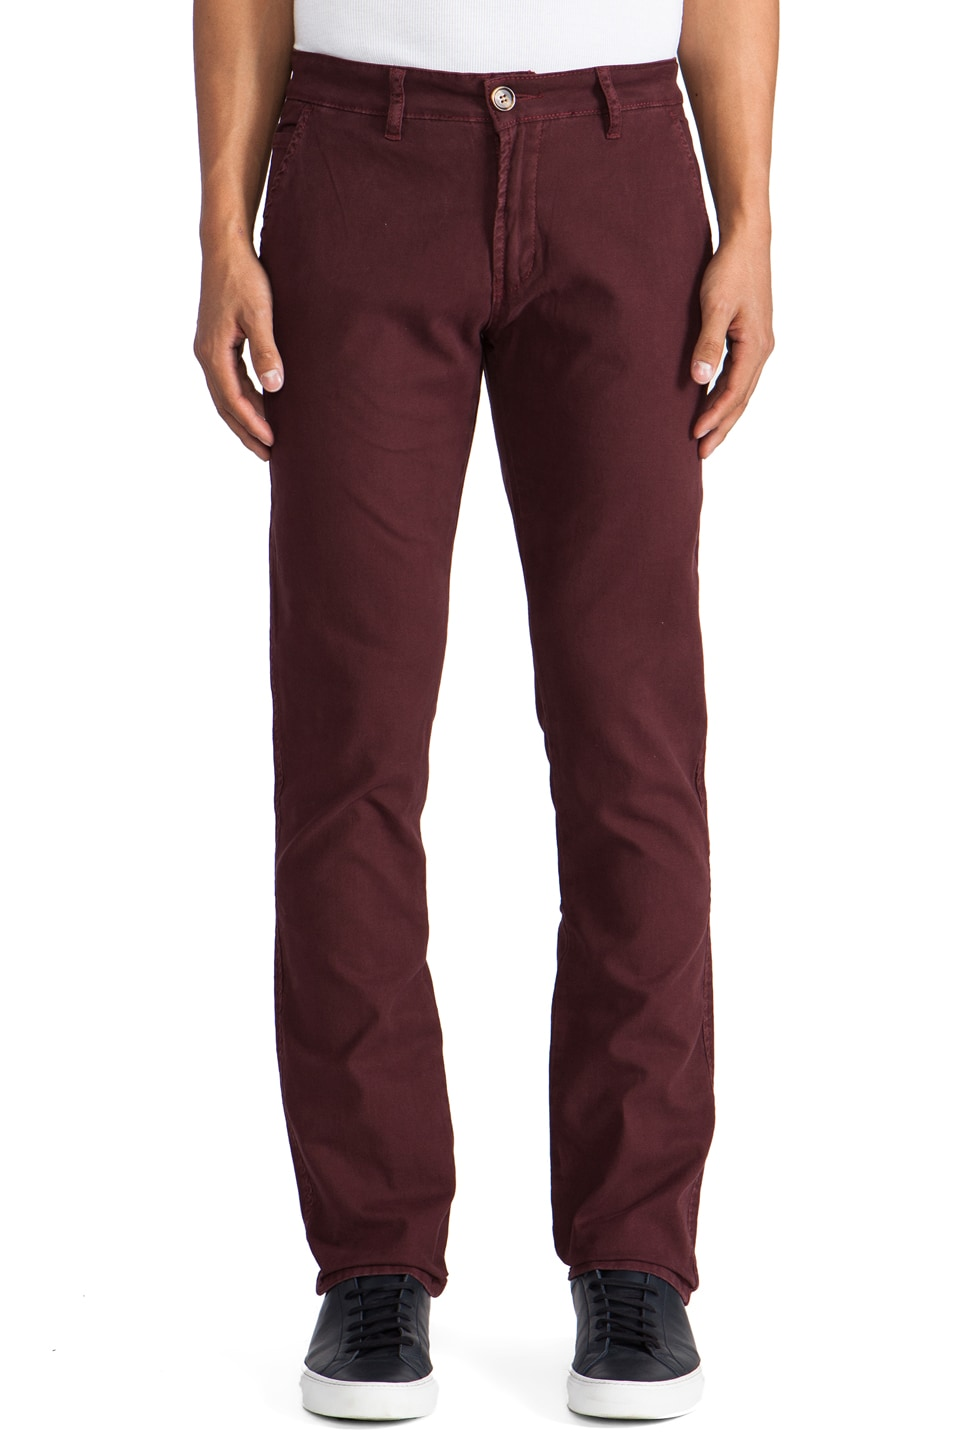 Ezekiel Pant in Deep Wine